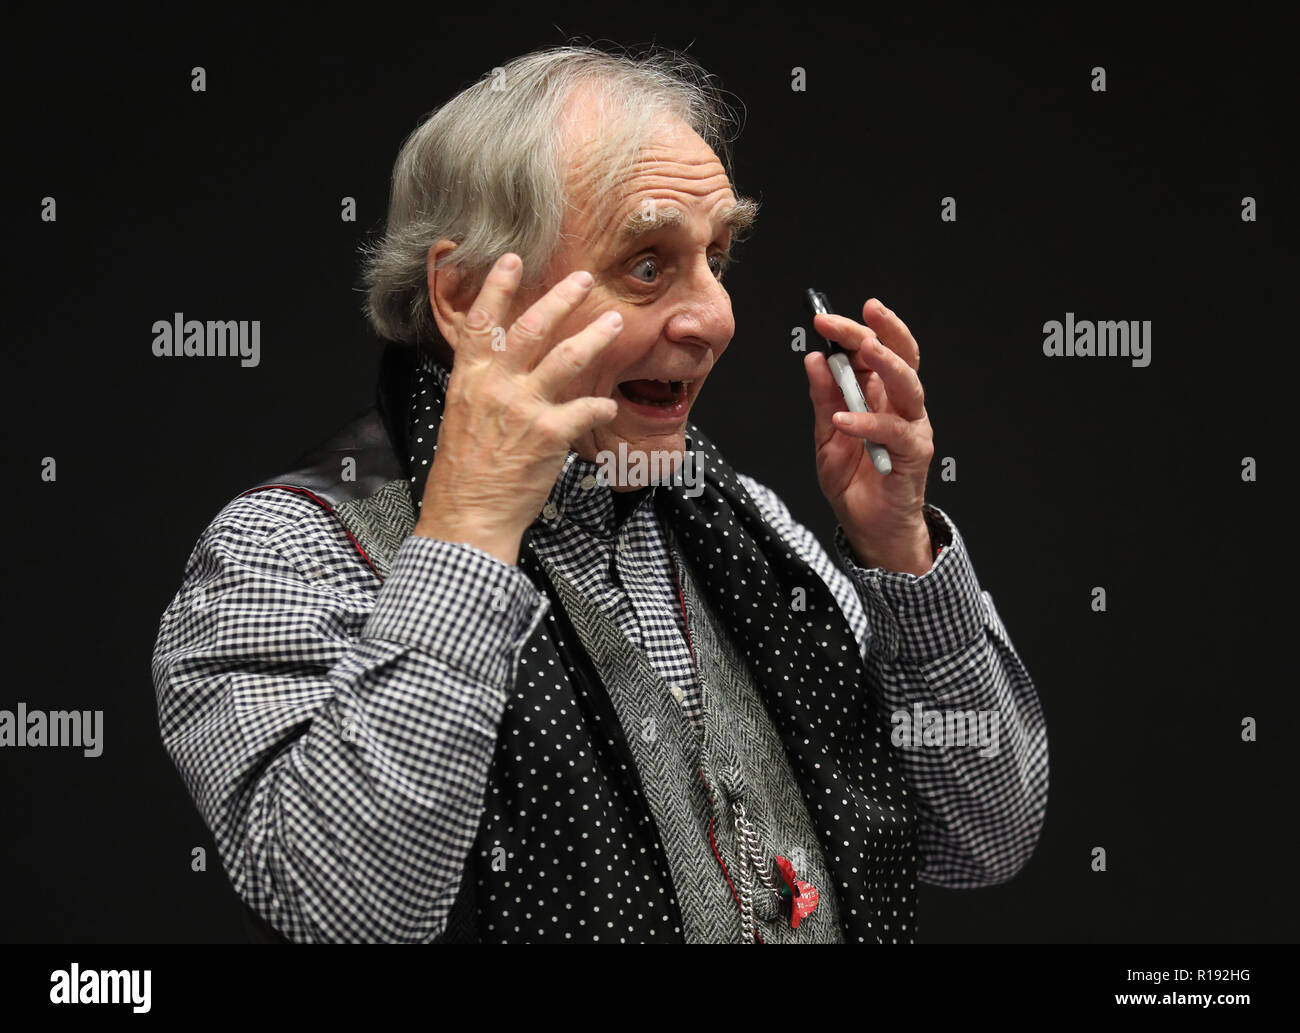 Sylvester McCoy during the FOR THE LOVE OF 80s -Comic Con Scotland event at the Edinburgh International Conference Centre. - Stock Image